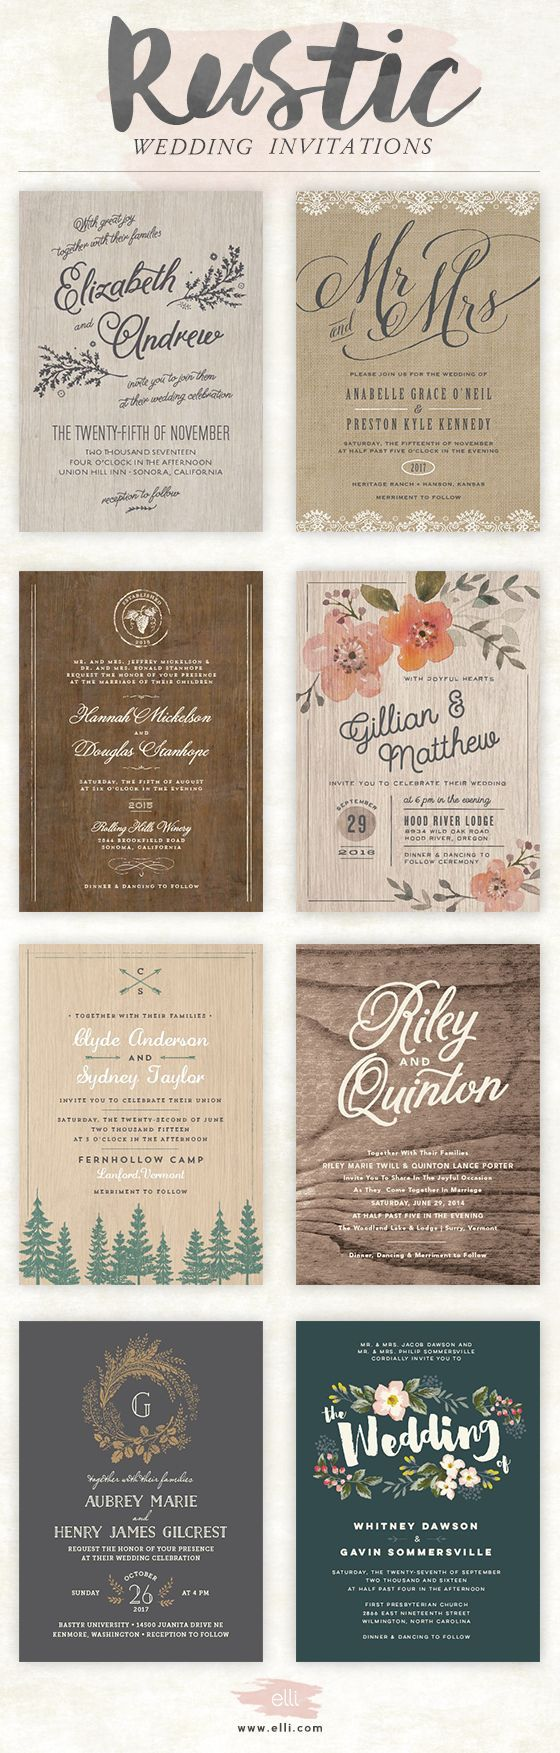 Rustic wedding invitations bellacollinacom Bella